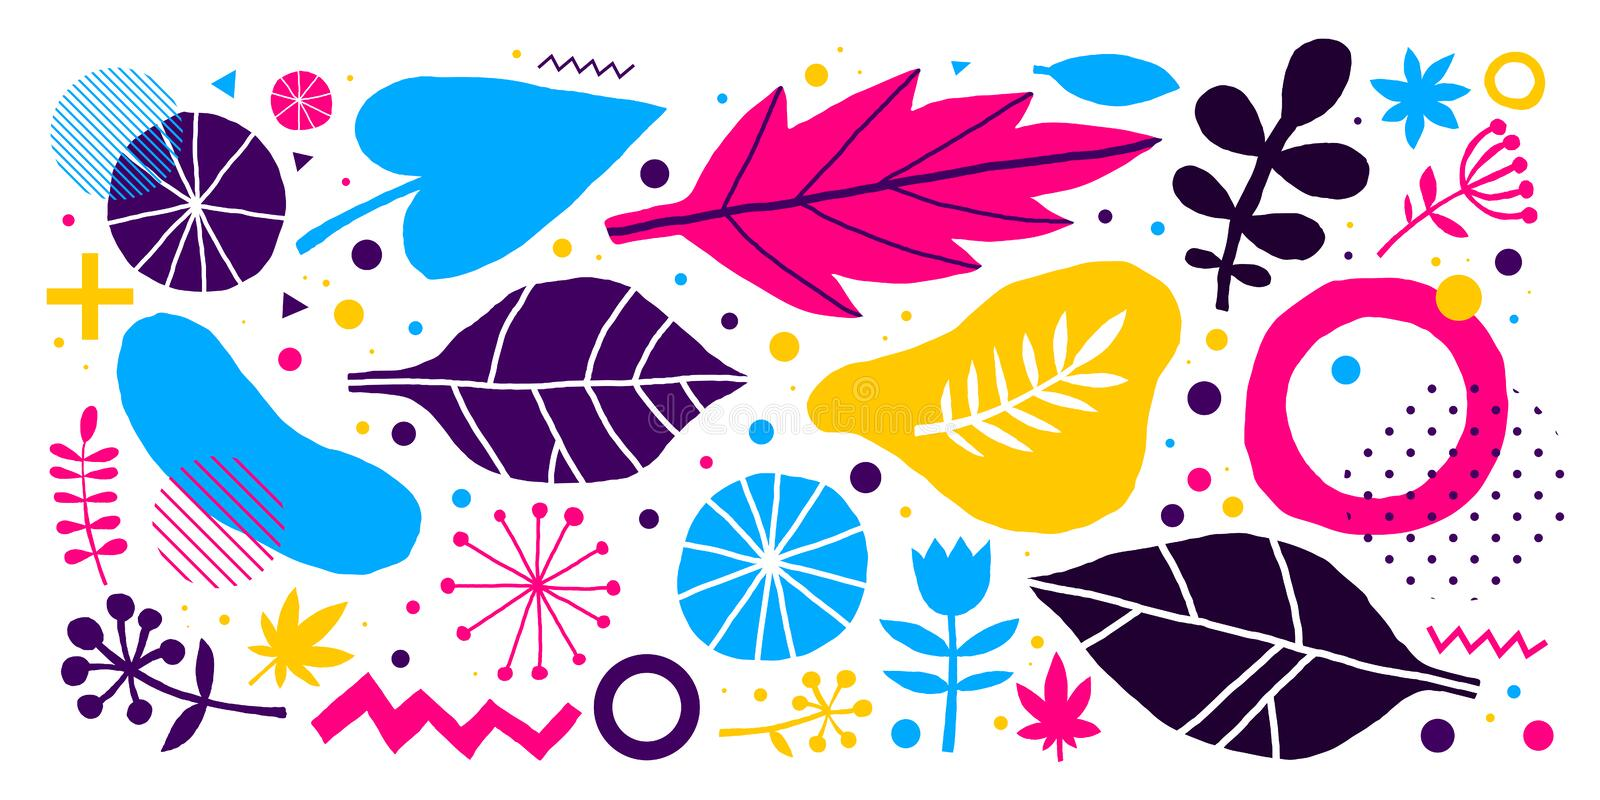 Colorful vector background with hand drawn floral elements. Can be used for advertising, web design and printed media. vector illustration